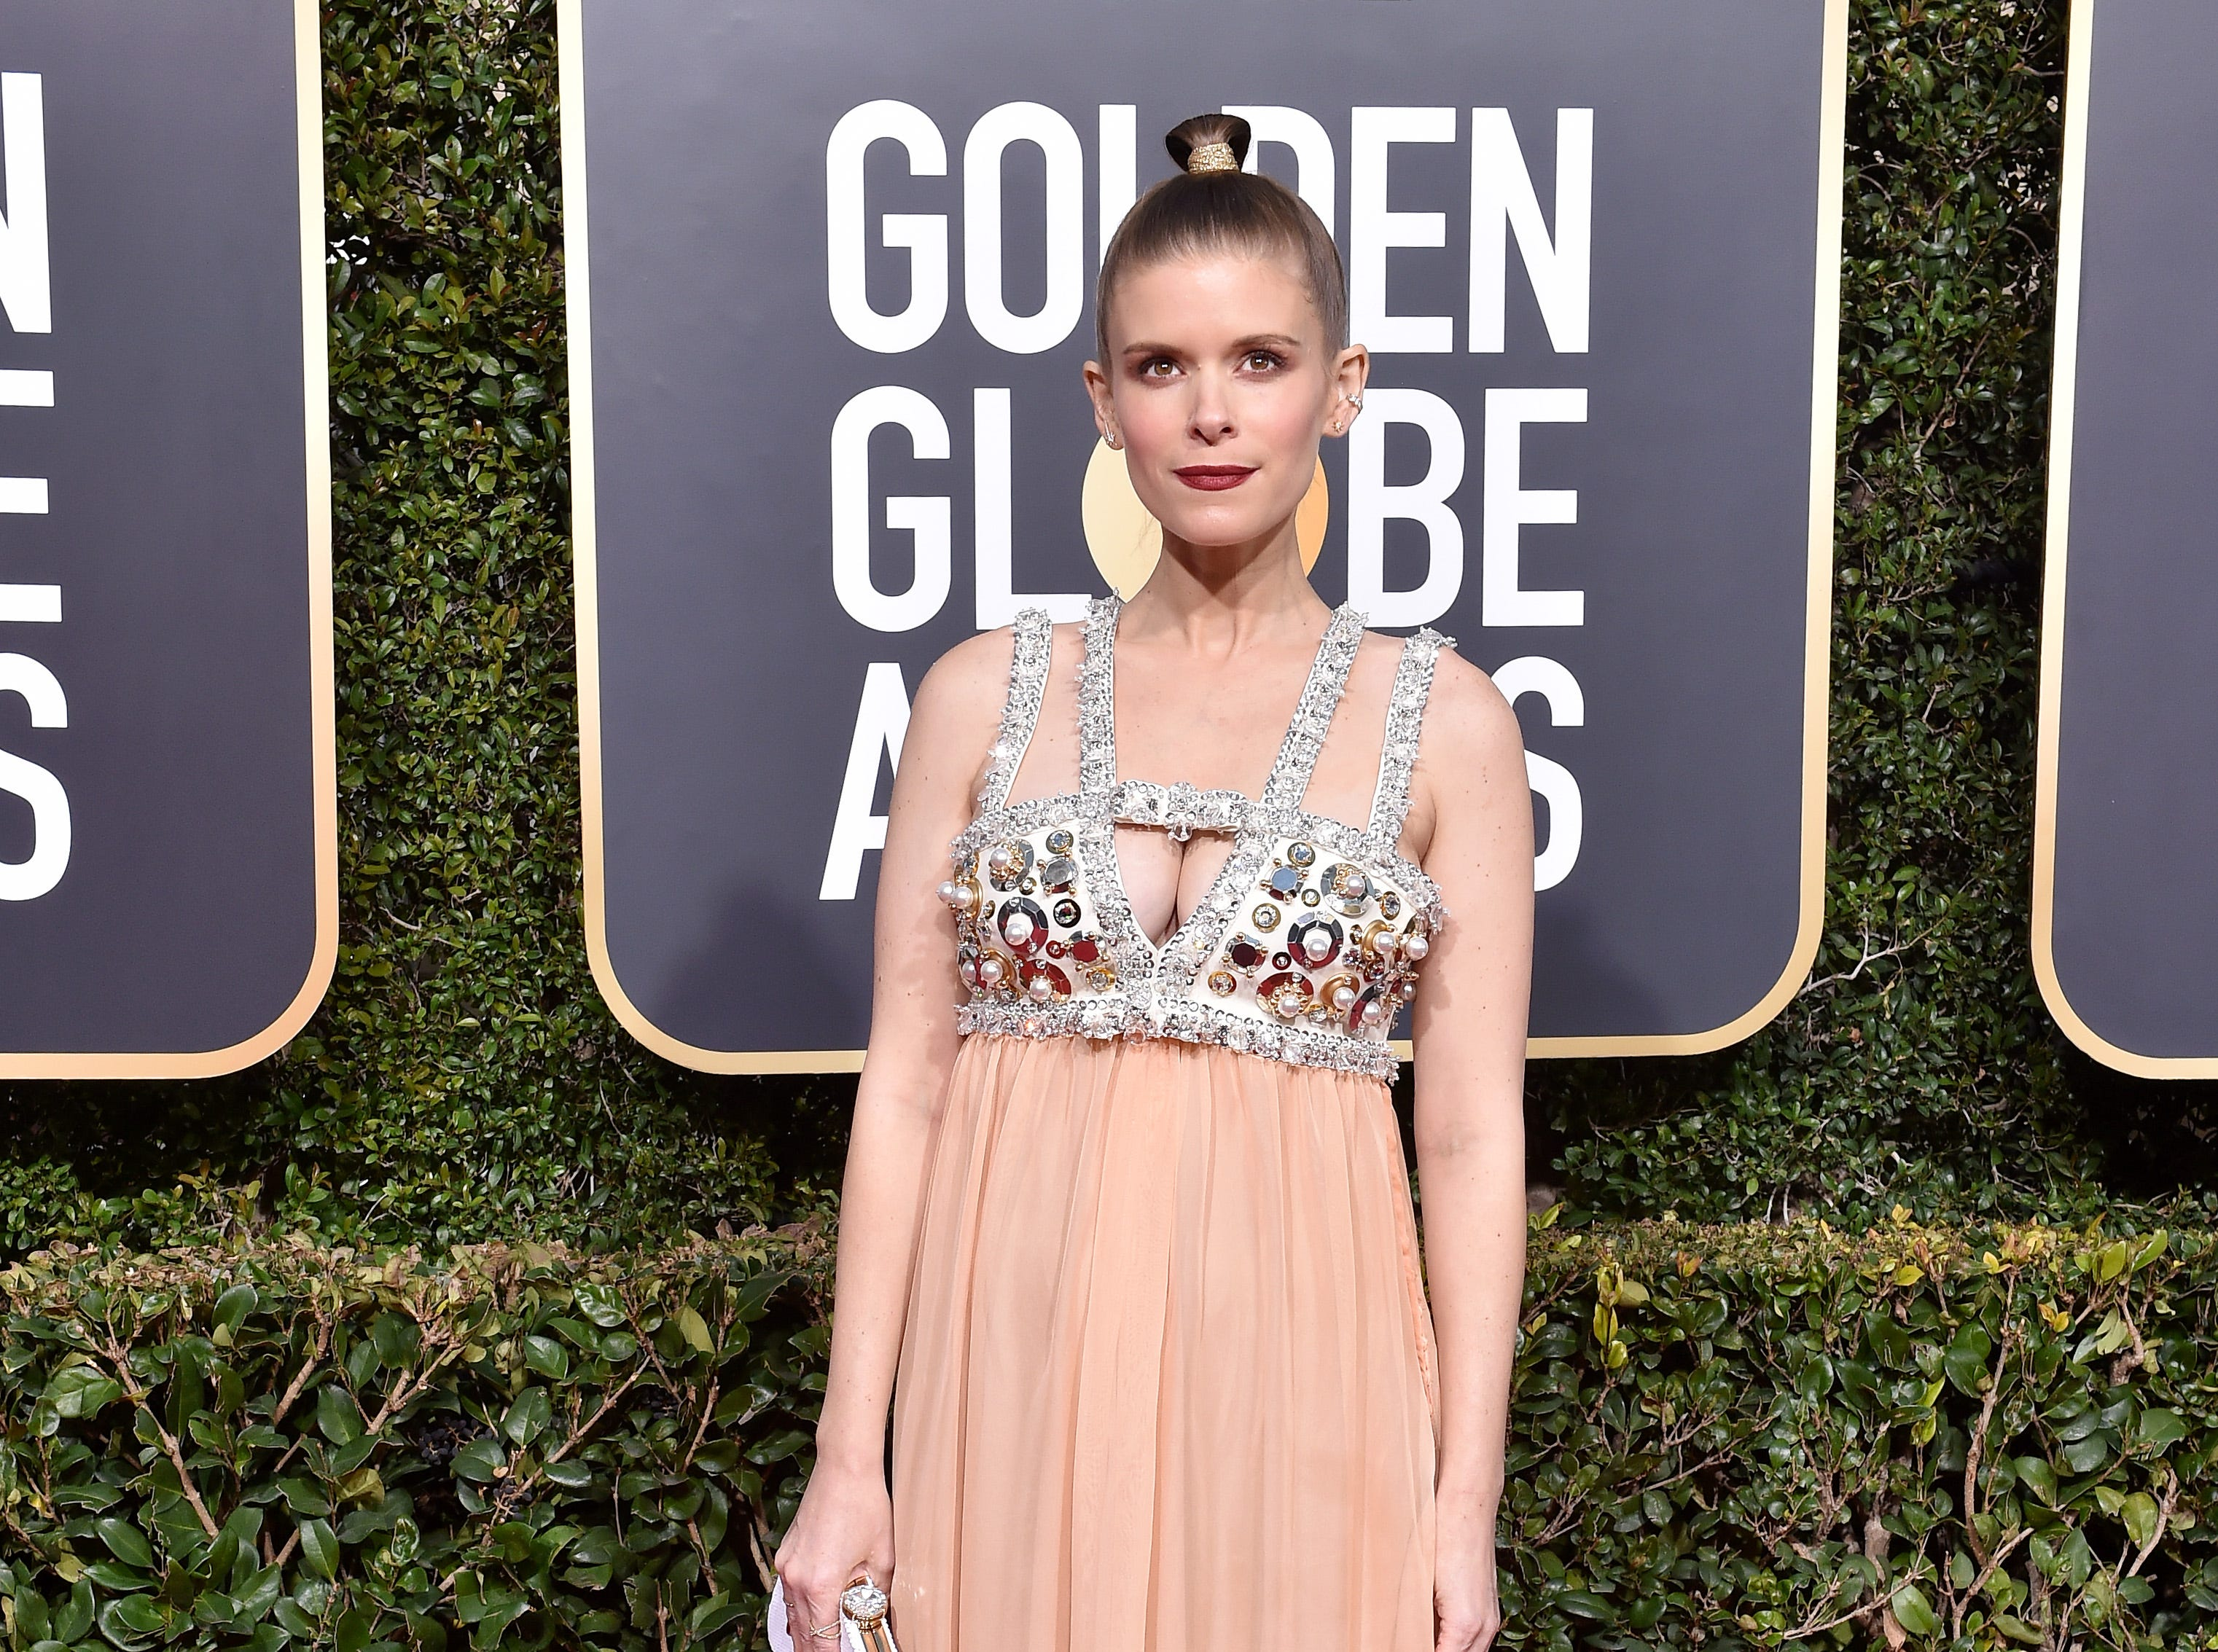 BEVERLY HILLS, CA - JANUARY 06:  Kate Mara attends the 76th Annual Golden Globe Awards at The Beverly Hilton Hotel on January 6, 2019 in Beverly Hills, California.  (Photo by Axelle/Bauer-Griffin/FilmMagic) ORG XMIT: 775268382 ORIG FILE ID: 1078650654